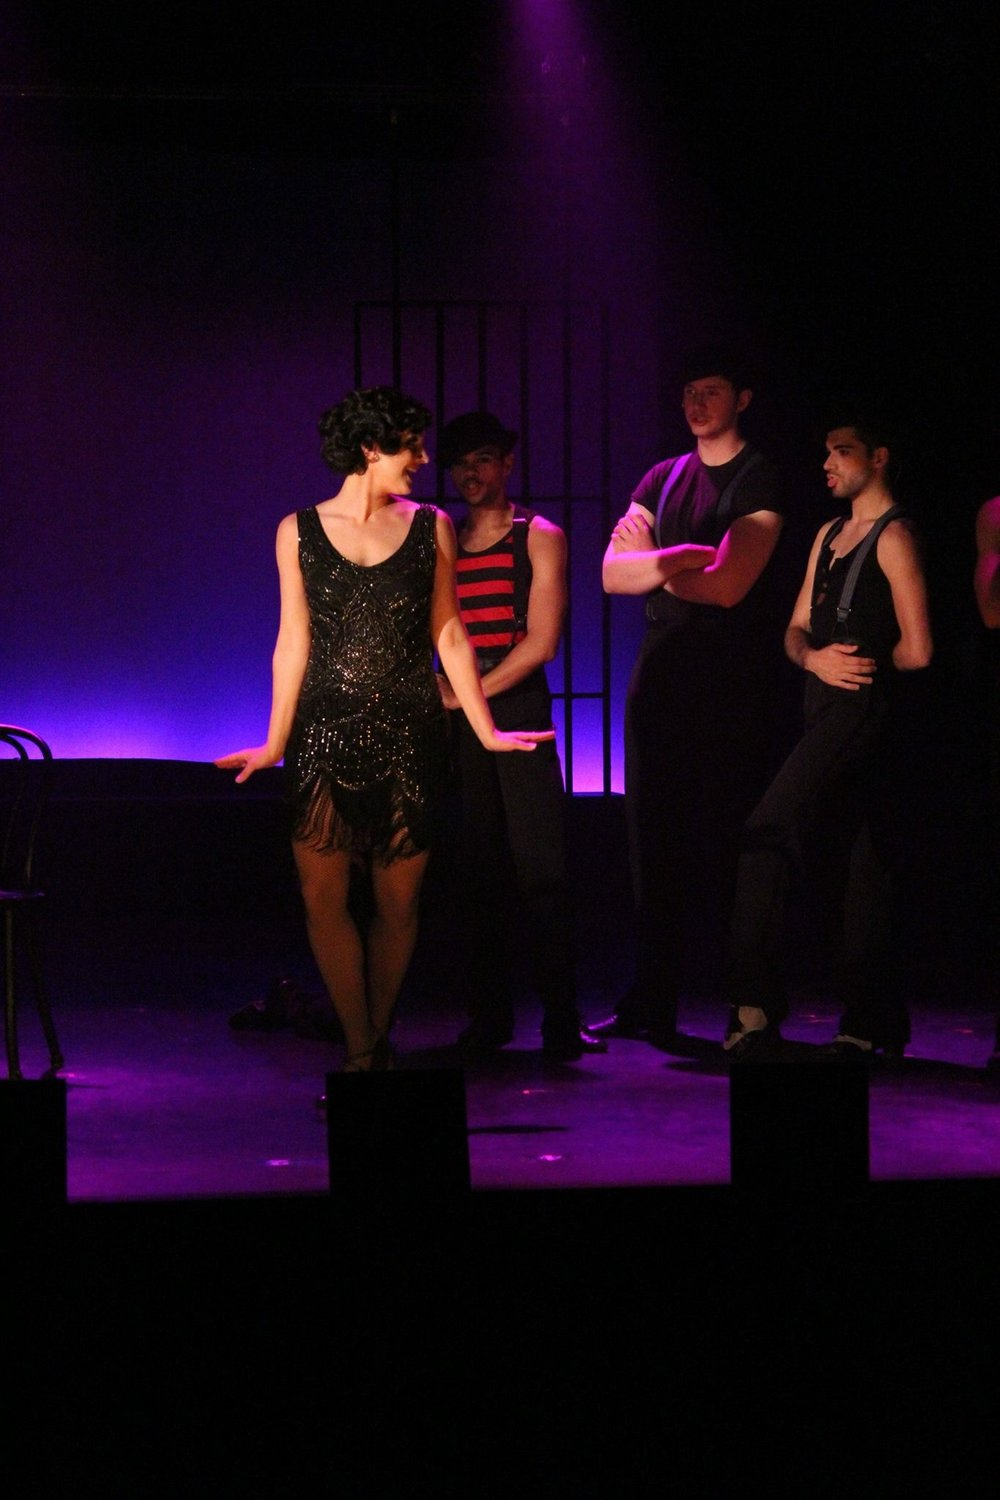 VELMA KELLY, CHICAGO